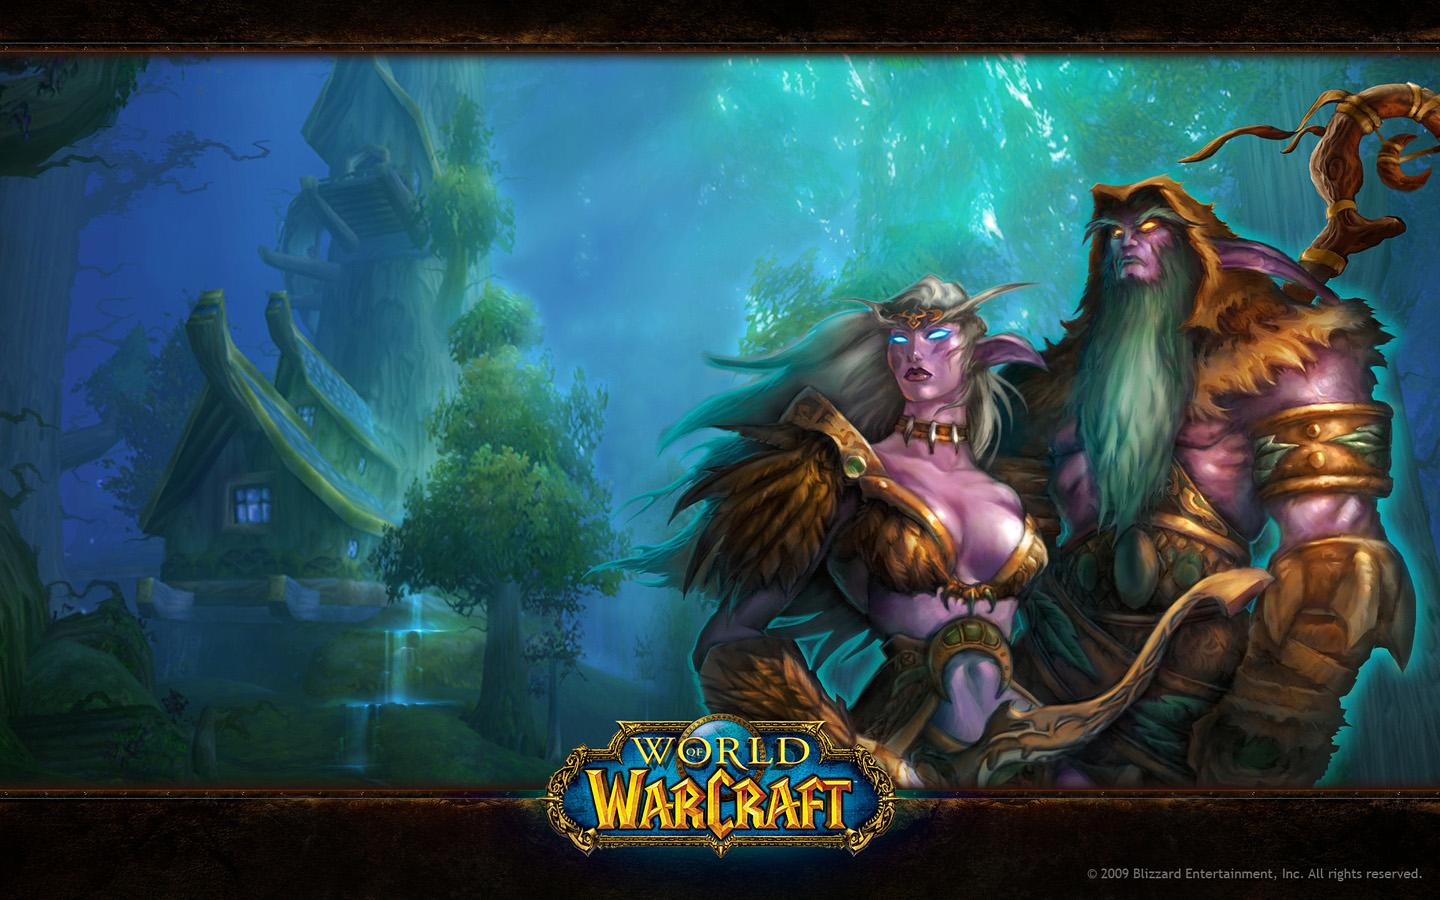 Download World Of Warcraft Wallpaper Hd Backgrounds Download